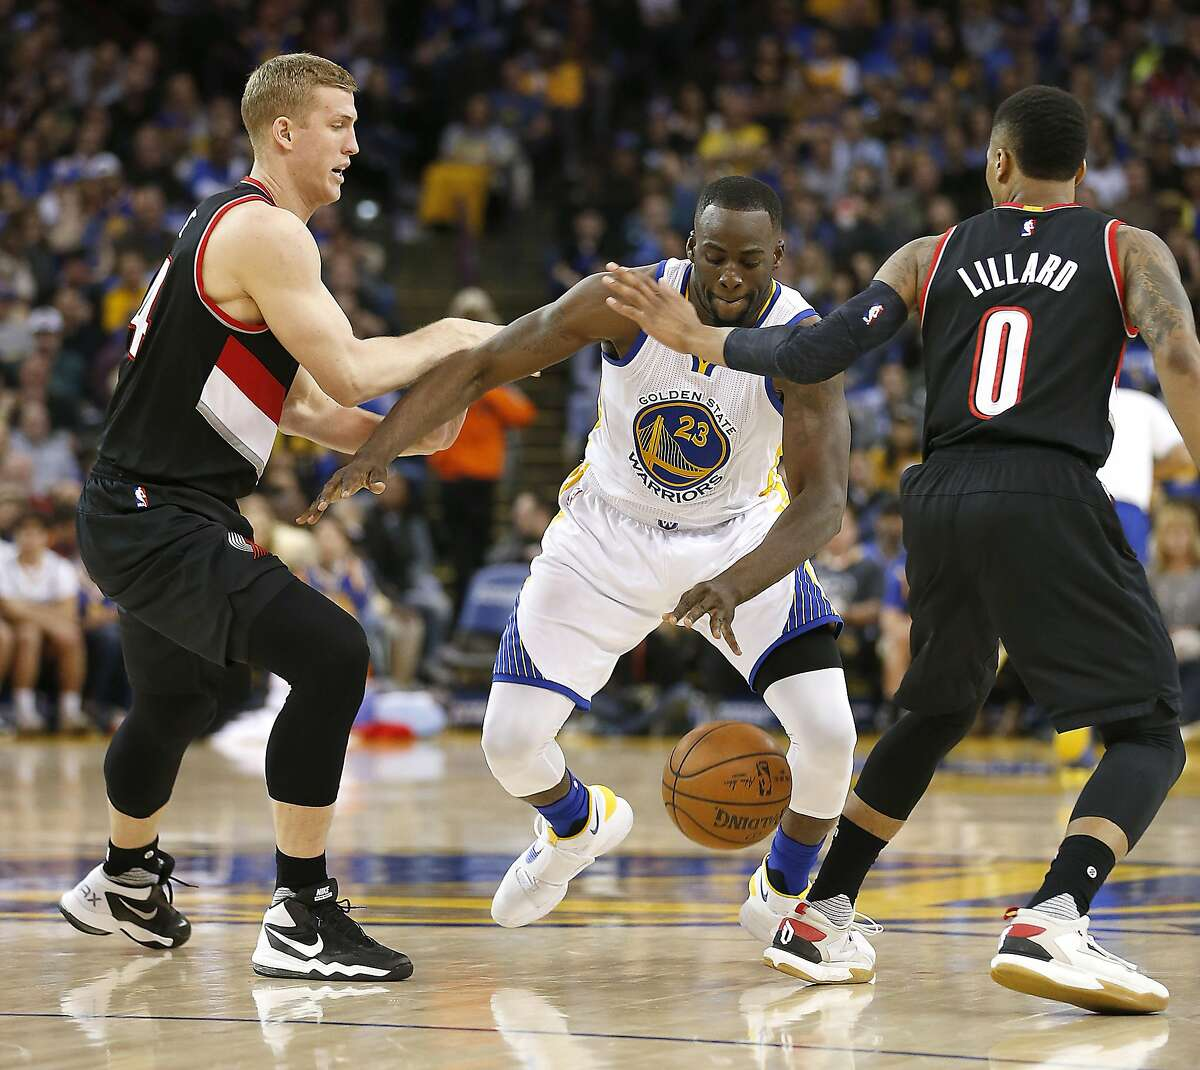 Golden State Warriors forward Draymond Green (23) drives the ball between Portland Trail Blazers' Mason Plumlee, left, and Damian Lillard (0) during the first half NBA game at Oracle Arena in Oakland, Calif., on Friday, March 11, 2016.